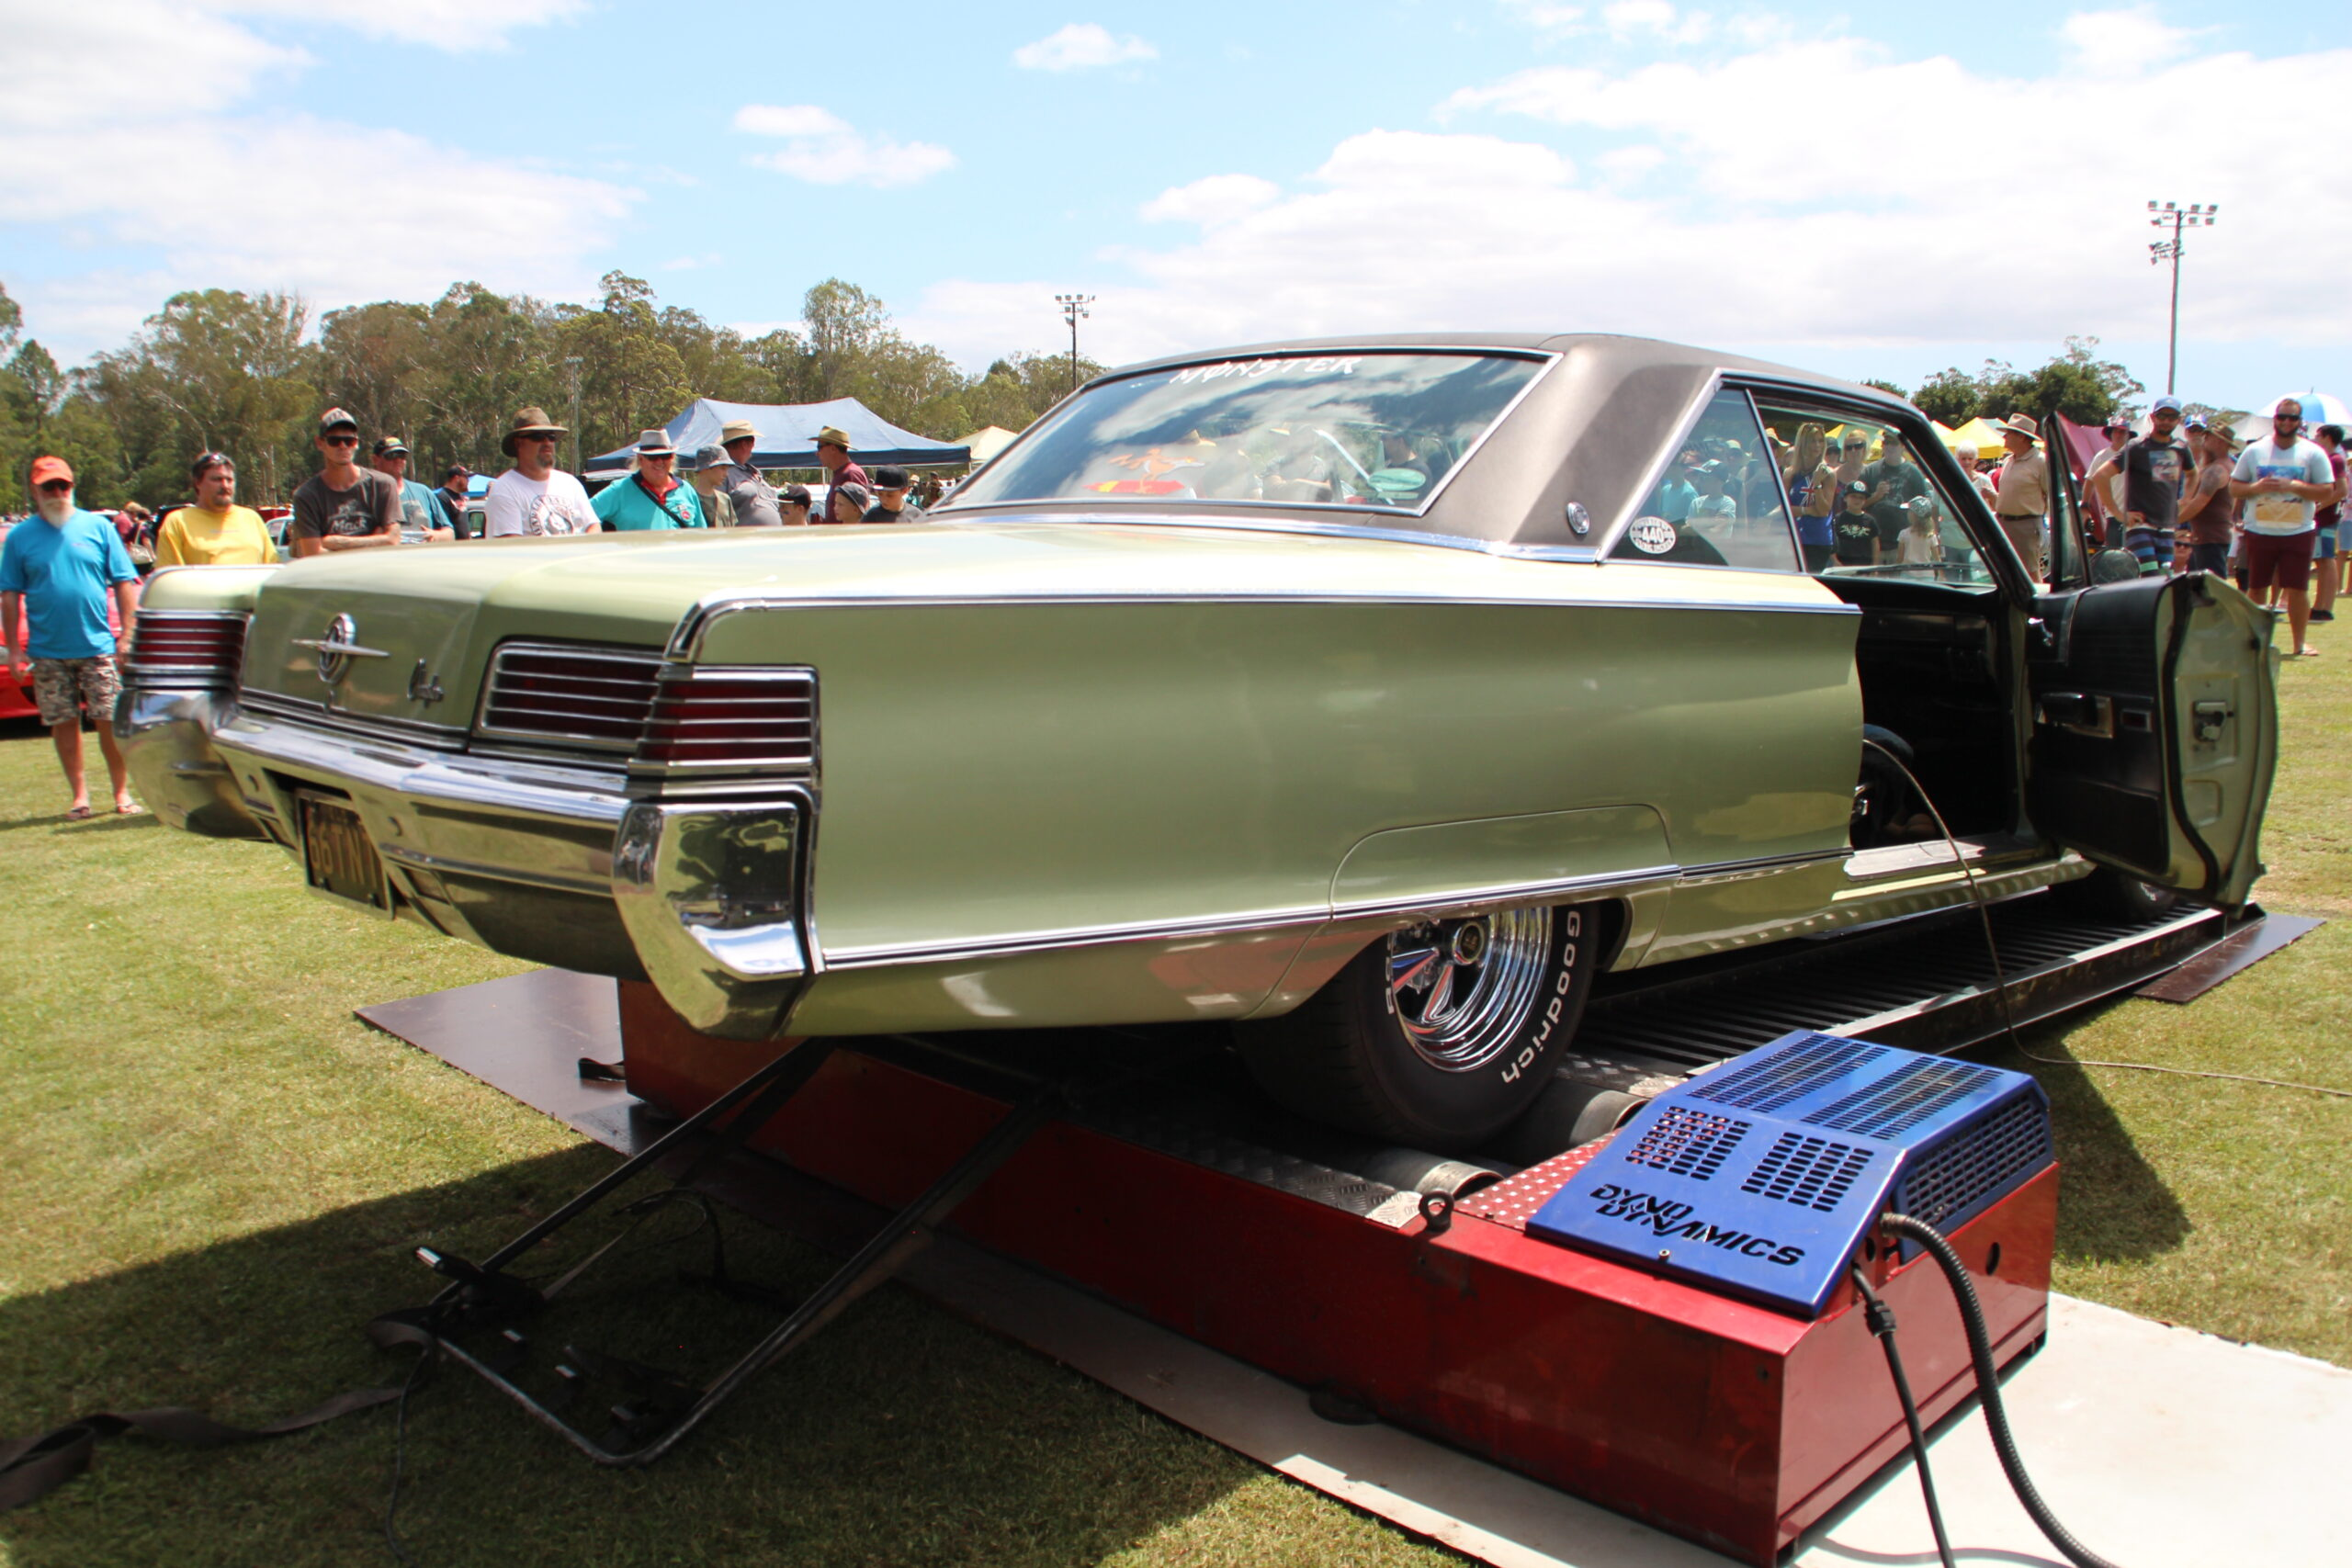 Classic cars, TNT, car show, dyno day, Power Curve Performance, mechanical service, sunshine coast, Plymouth Duster